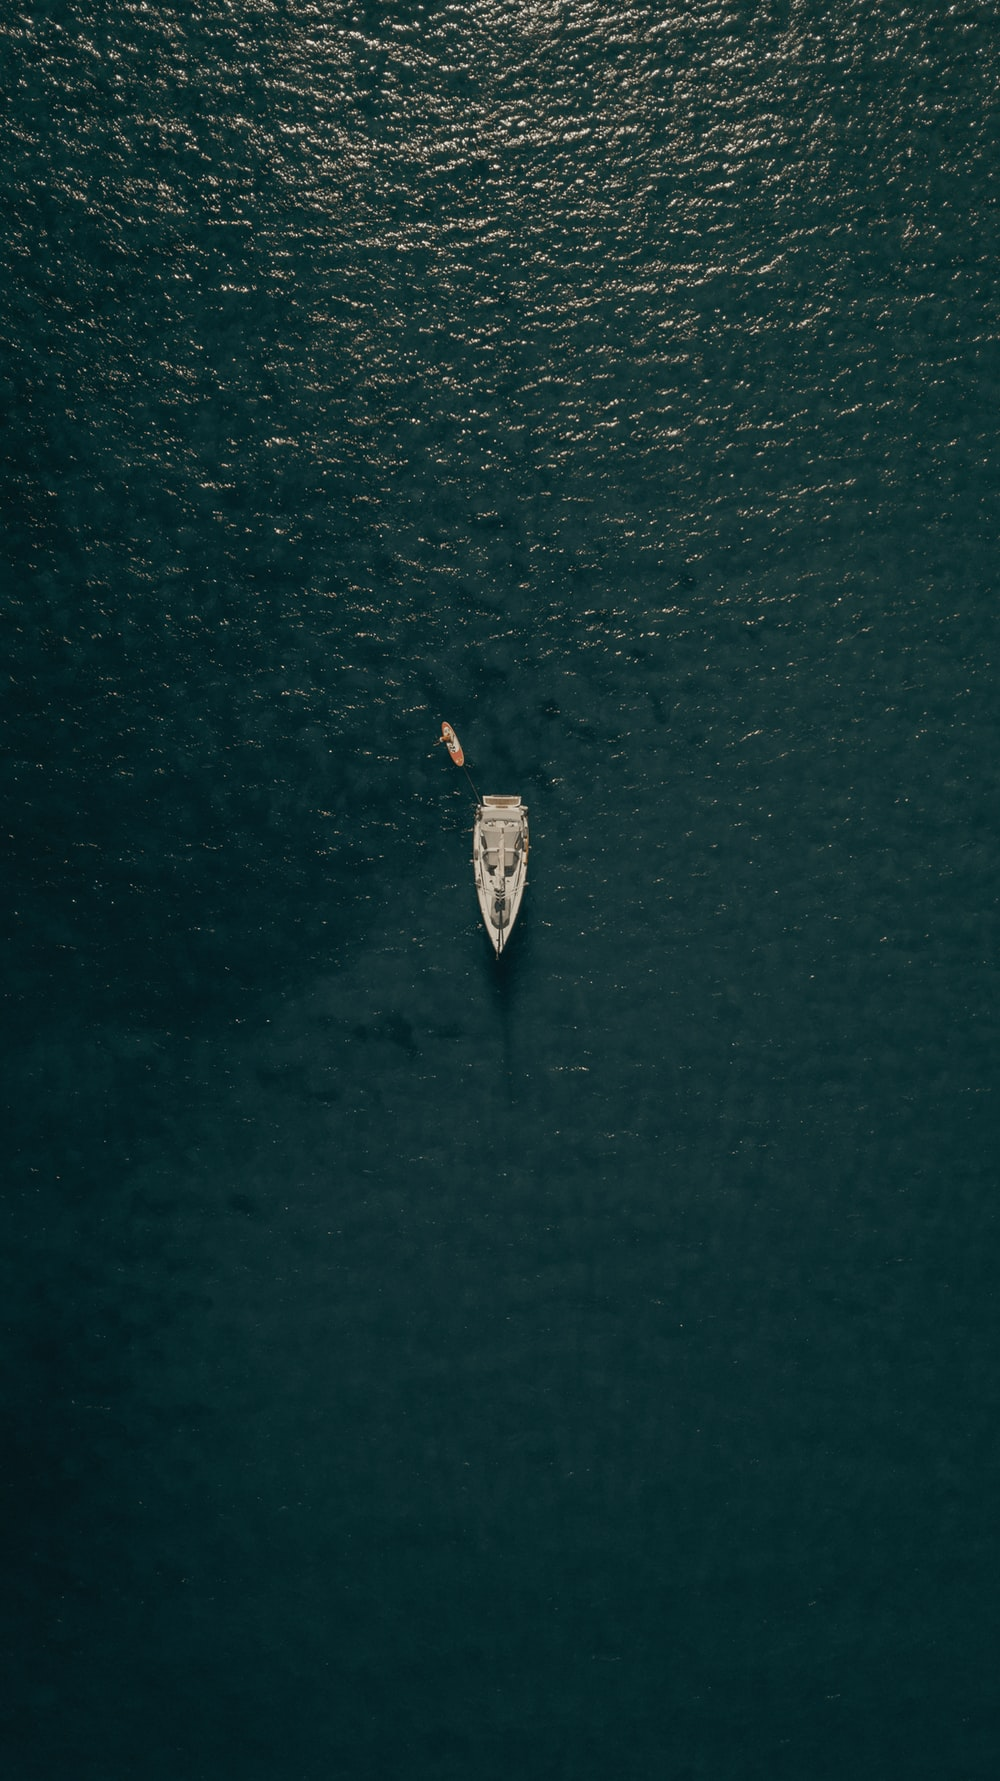 aerial view of person in white shirt riding on white boat on water during daytime